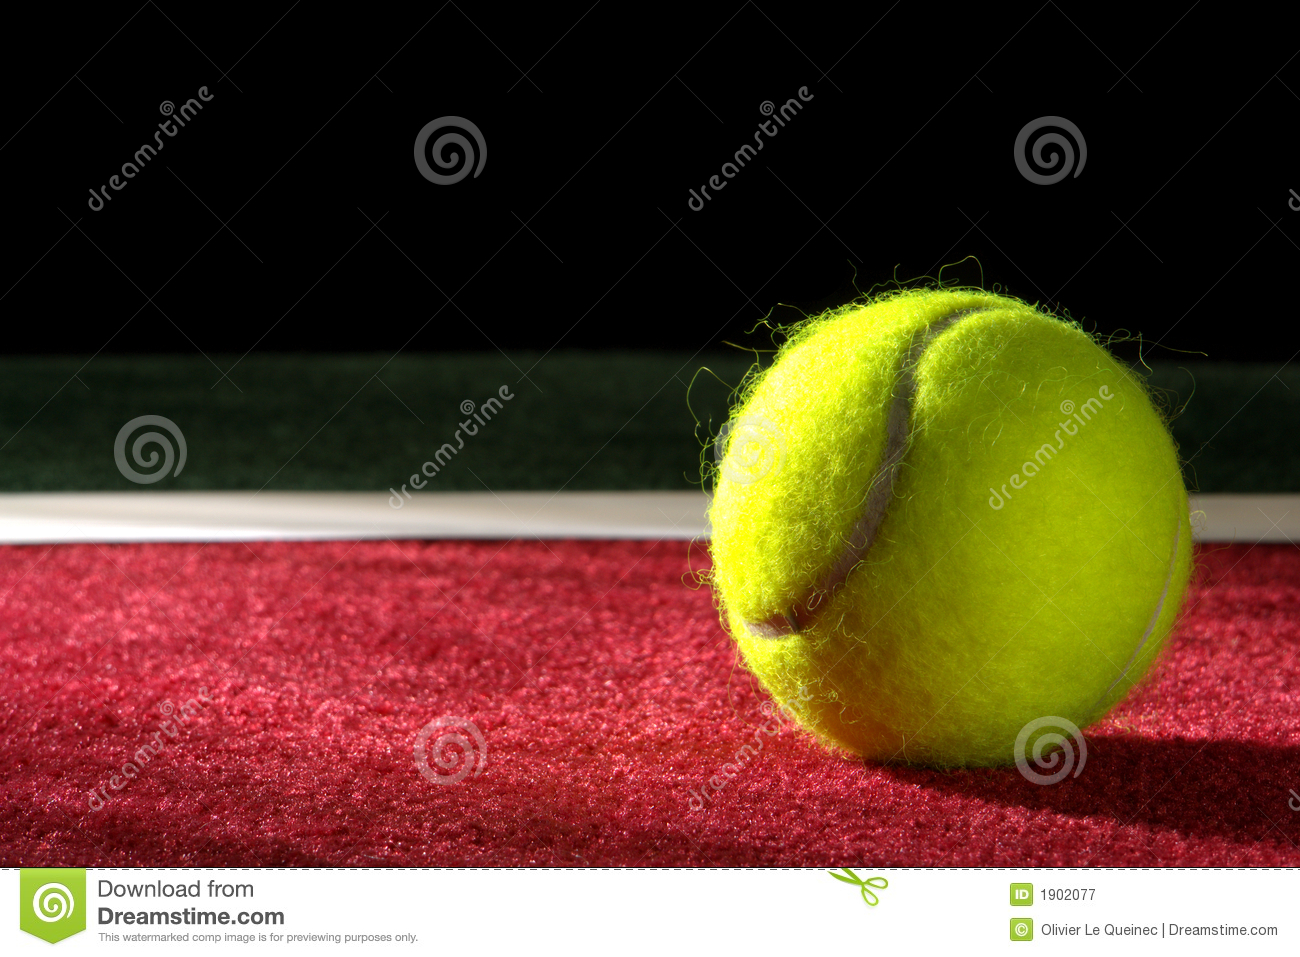 Squishy Tennis Ball : Tennis Ball On A Court Royalty Free Stock Photography - Image: 1902077